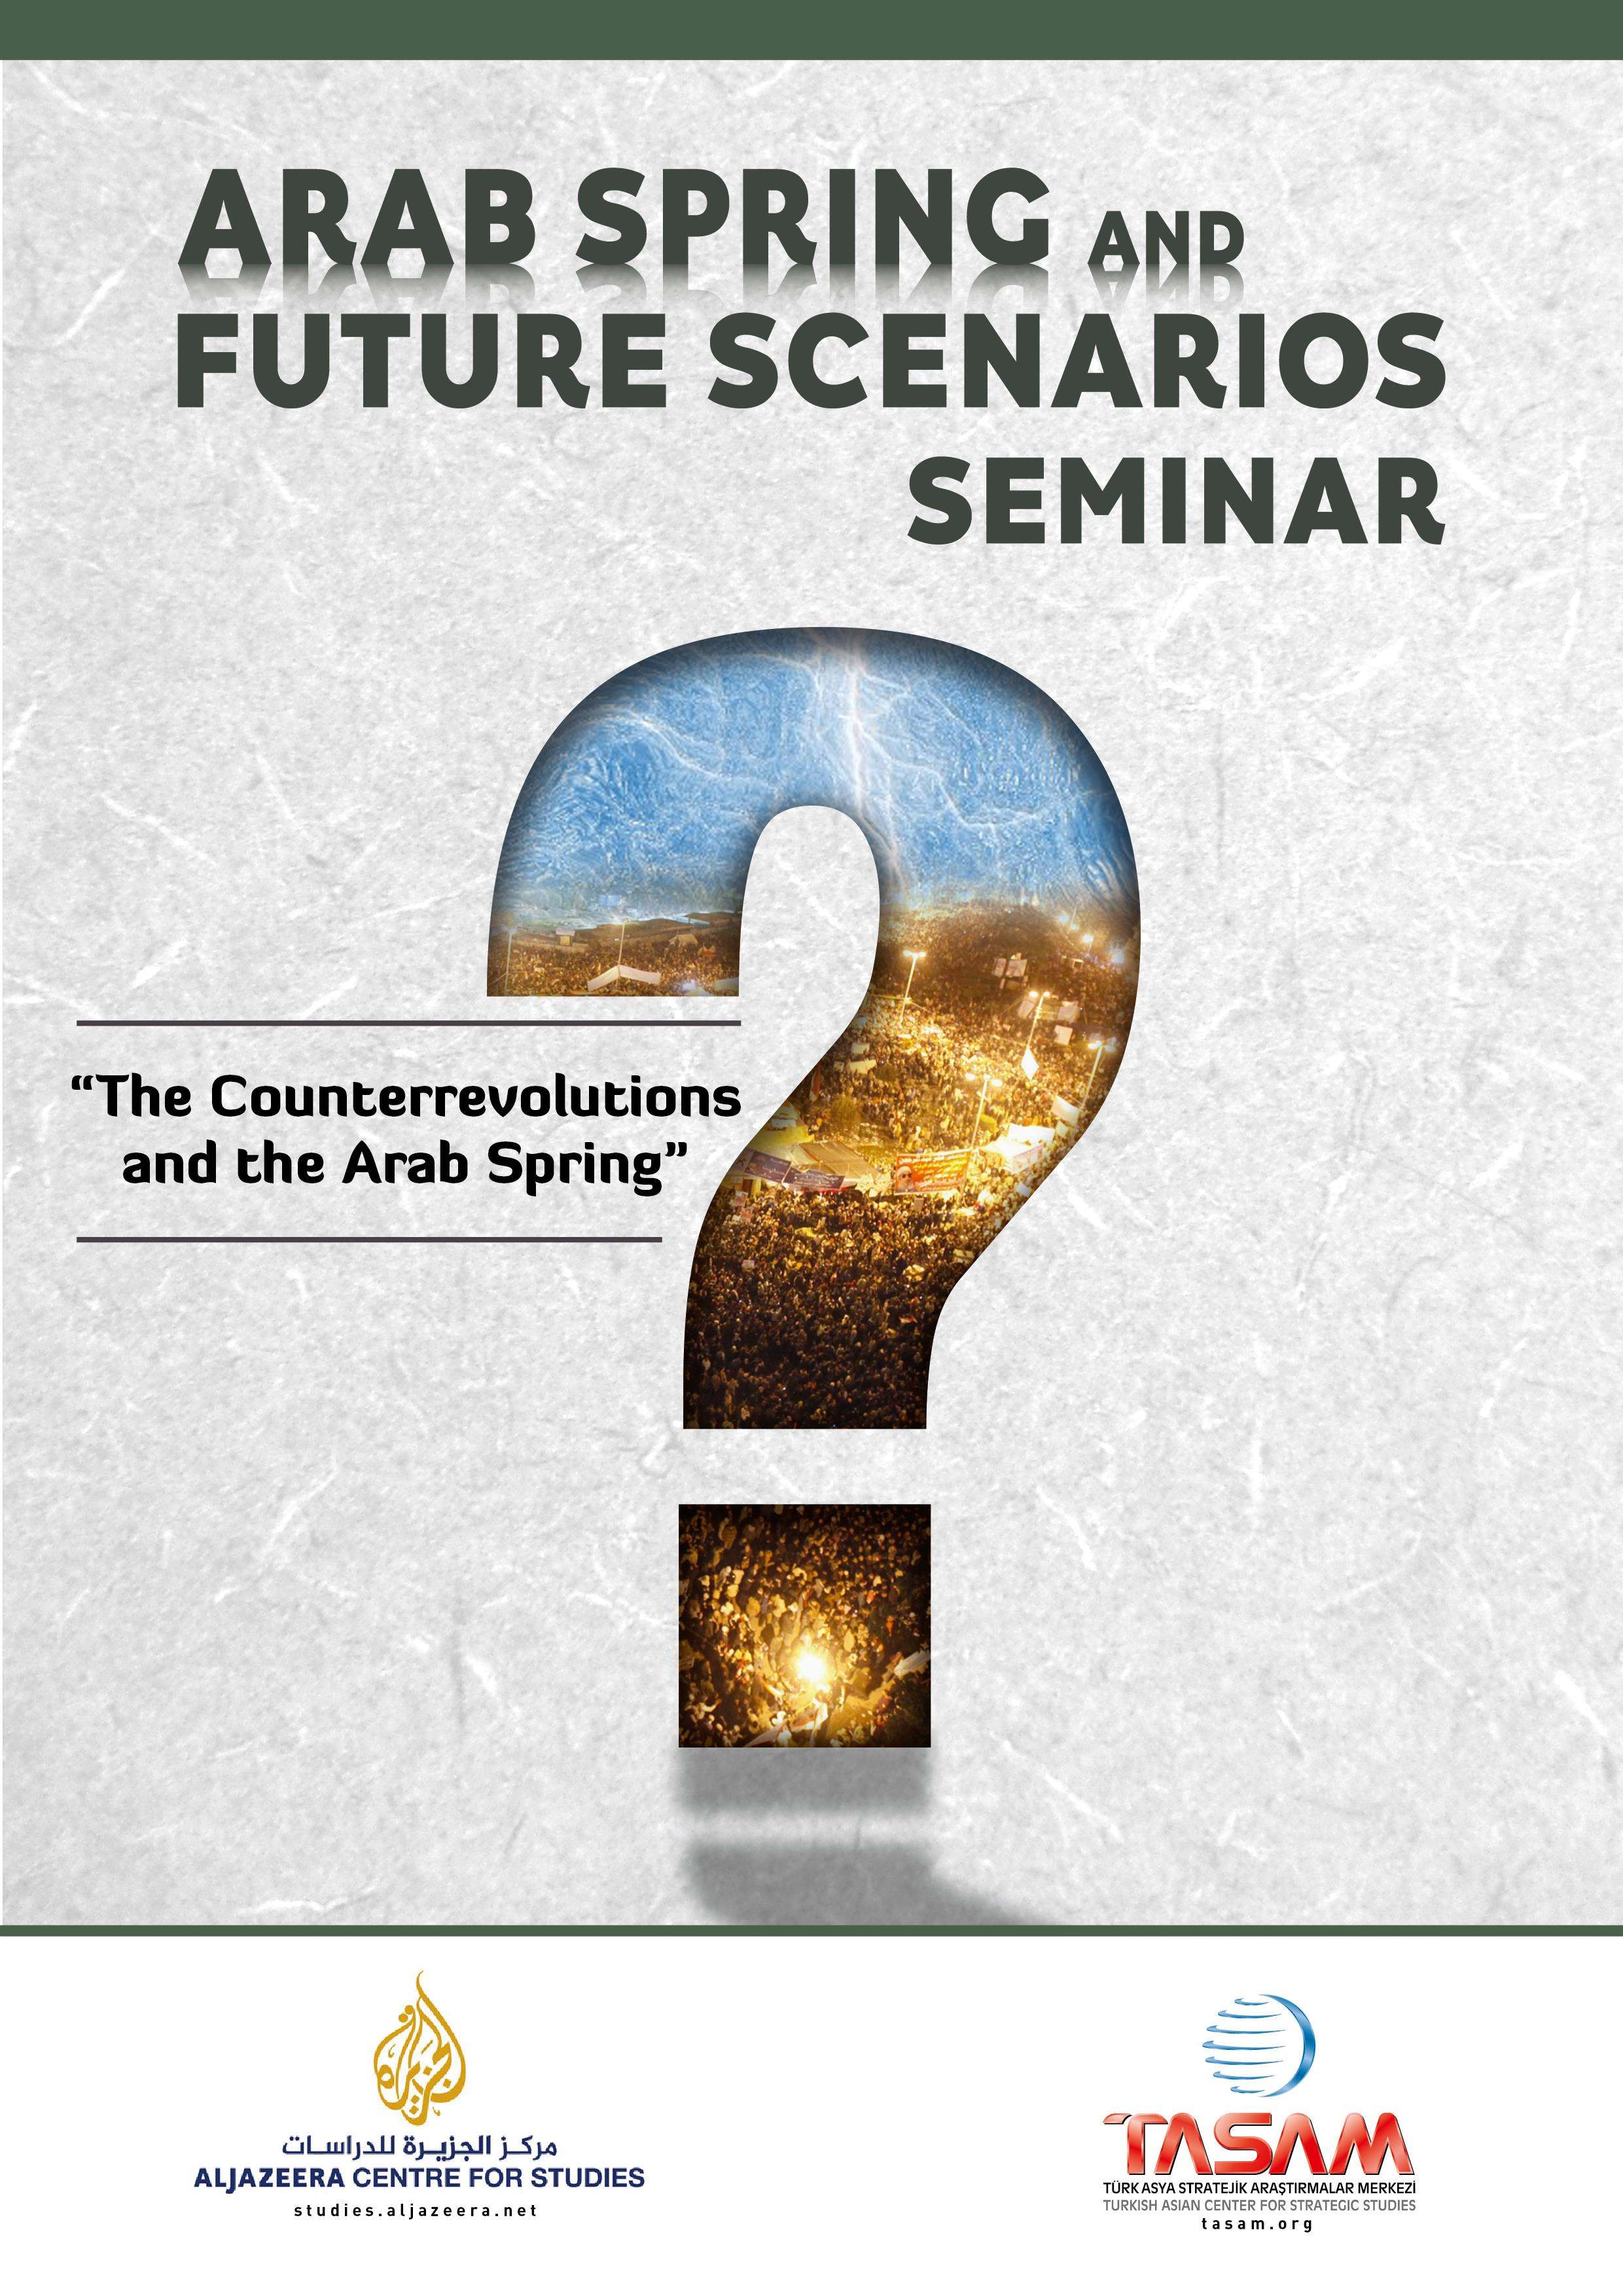 Arab Spring and Future Scenarios Seminar